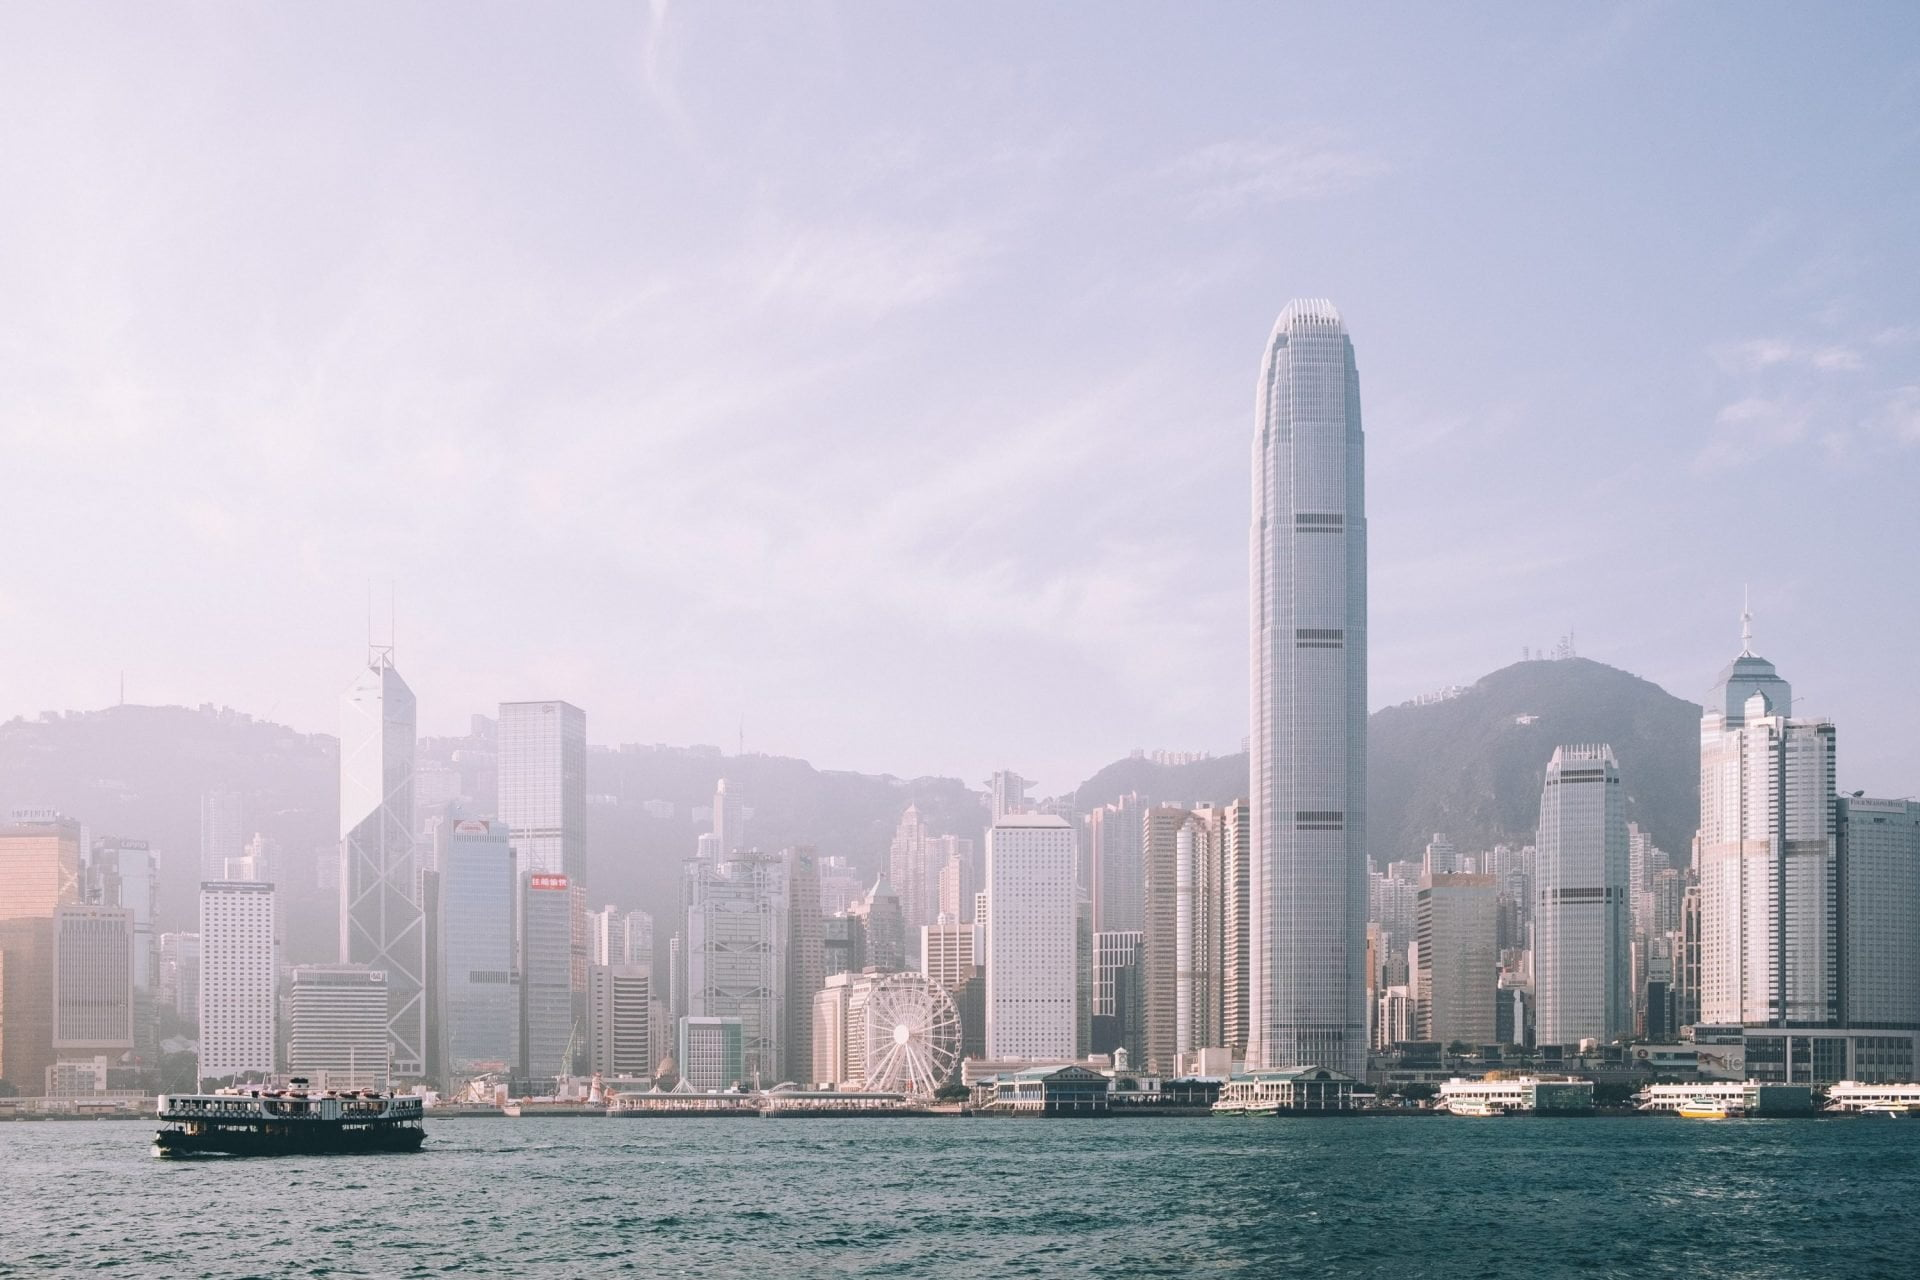 Outsized Bitcoin OTC Volume In Hong Kong Not Related to Protests, Research Finds 14